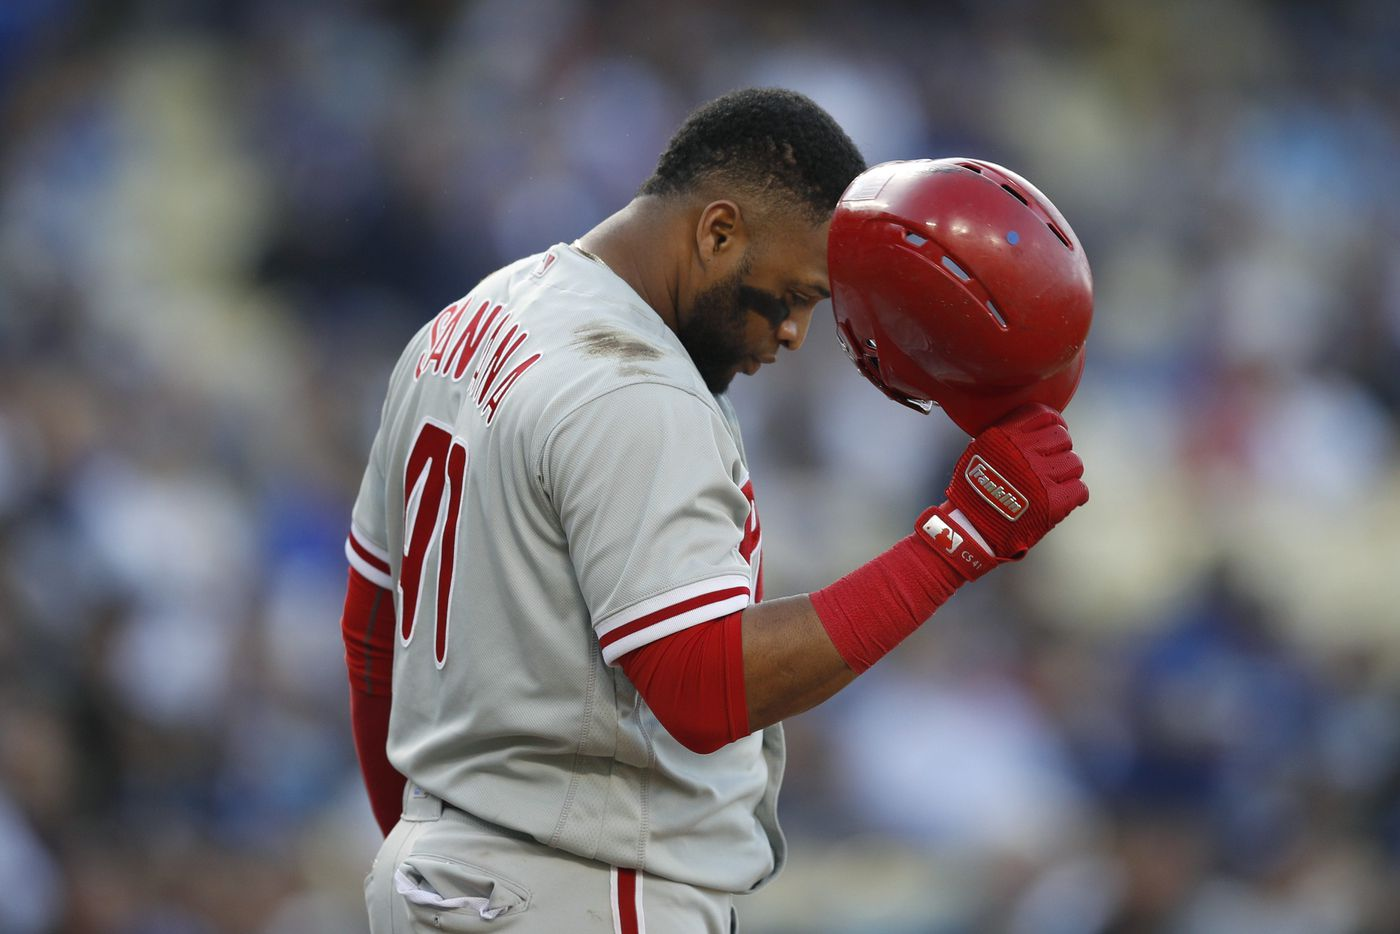 Phillies insist 'everything is fine' as they limp into big test against Cubs